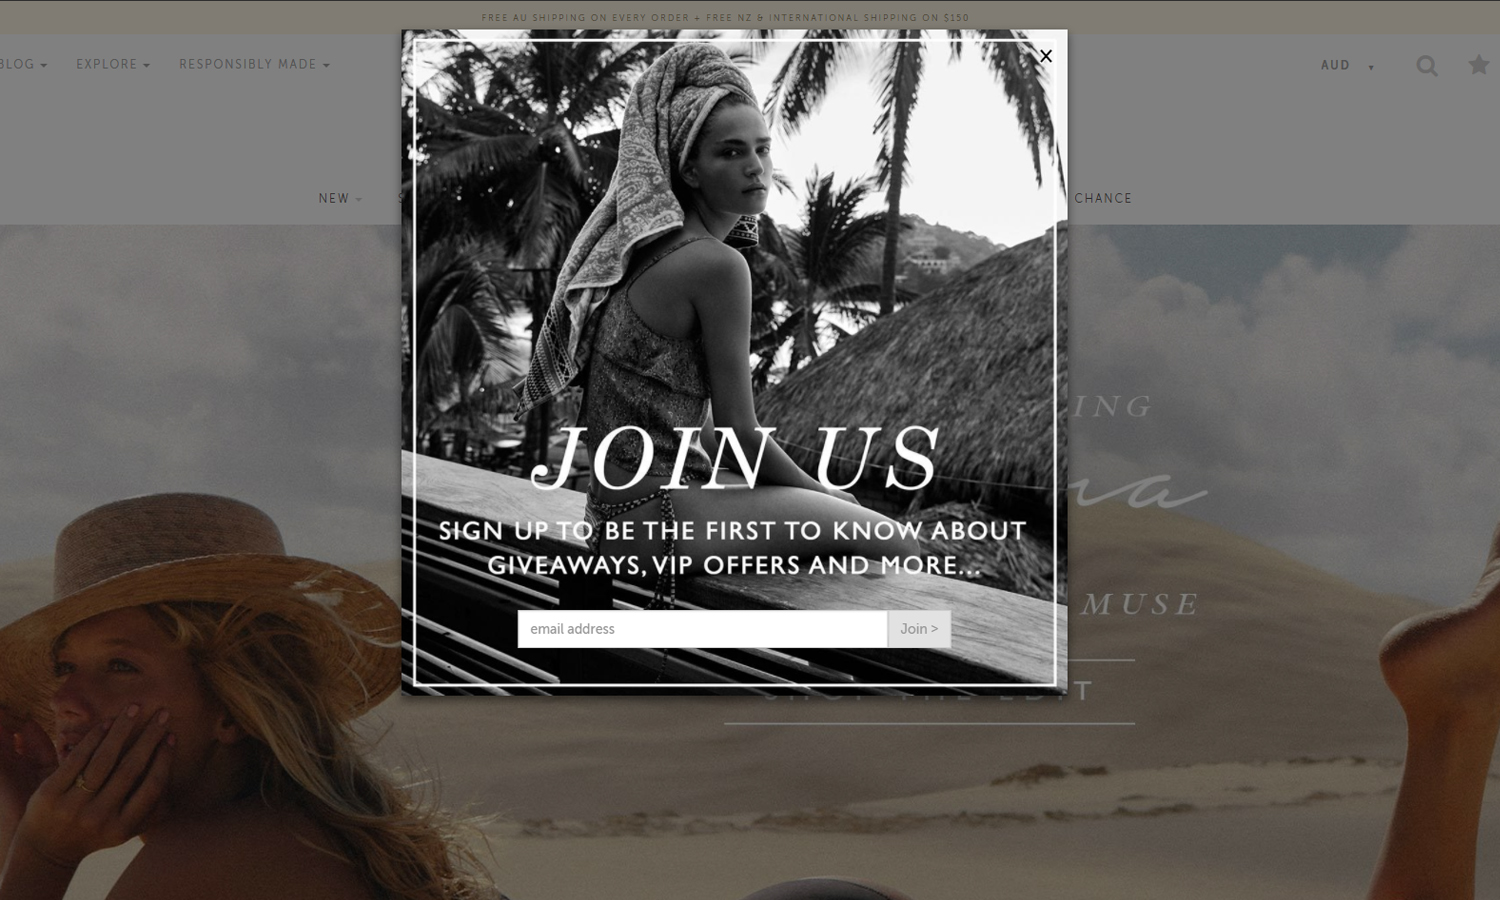 Tigerlily Swimwear's email pop-up